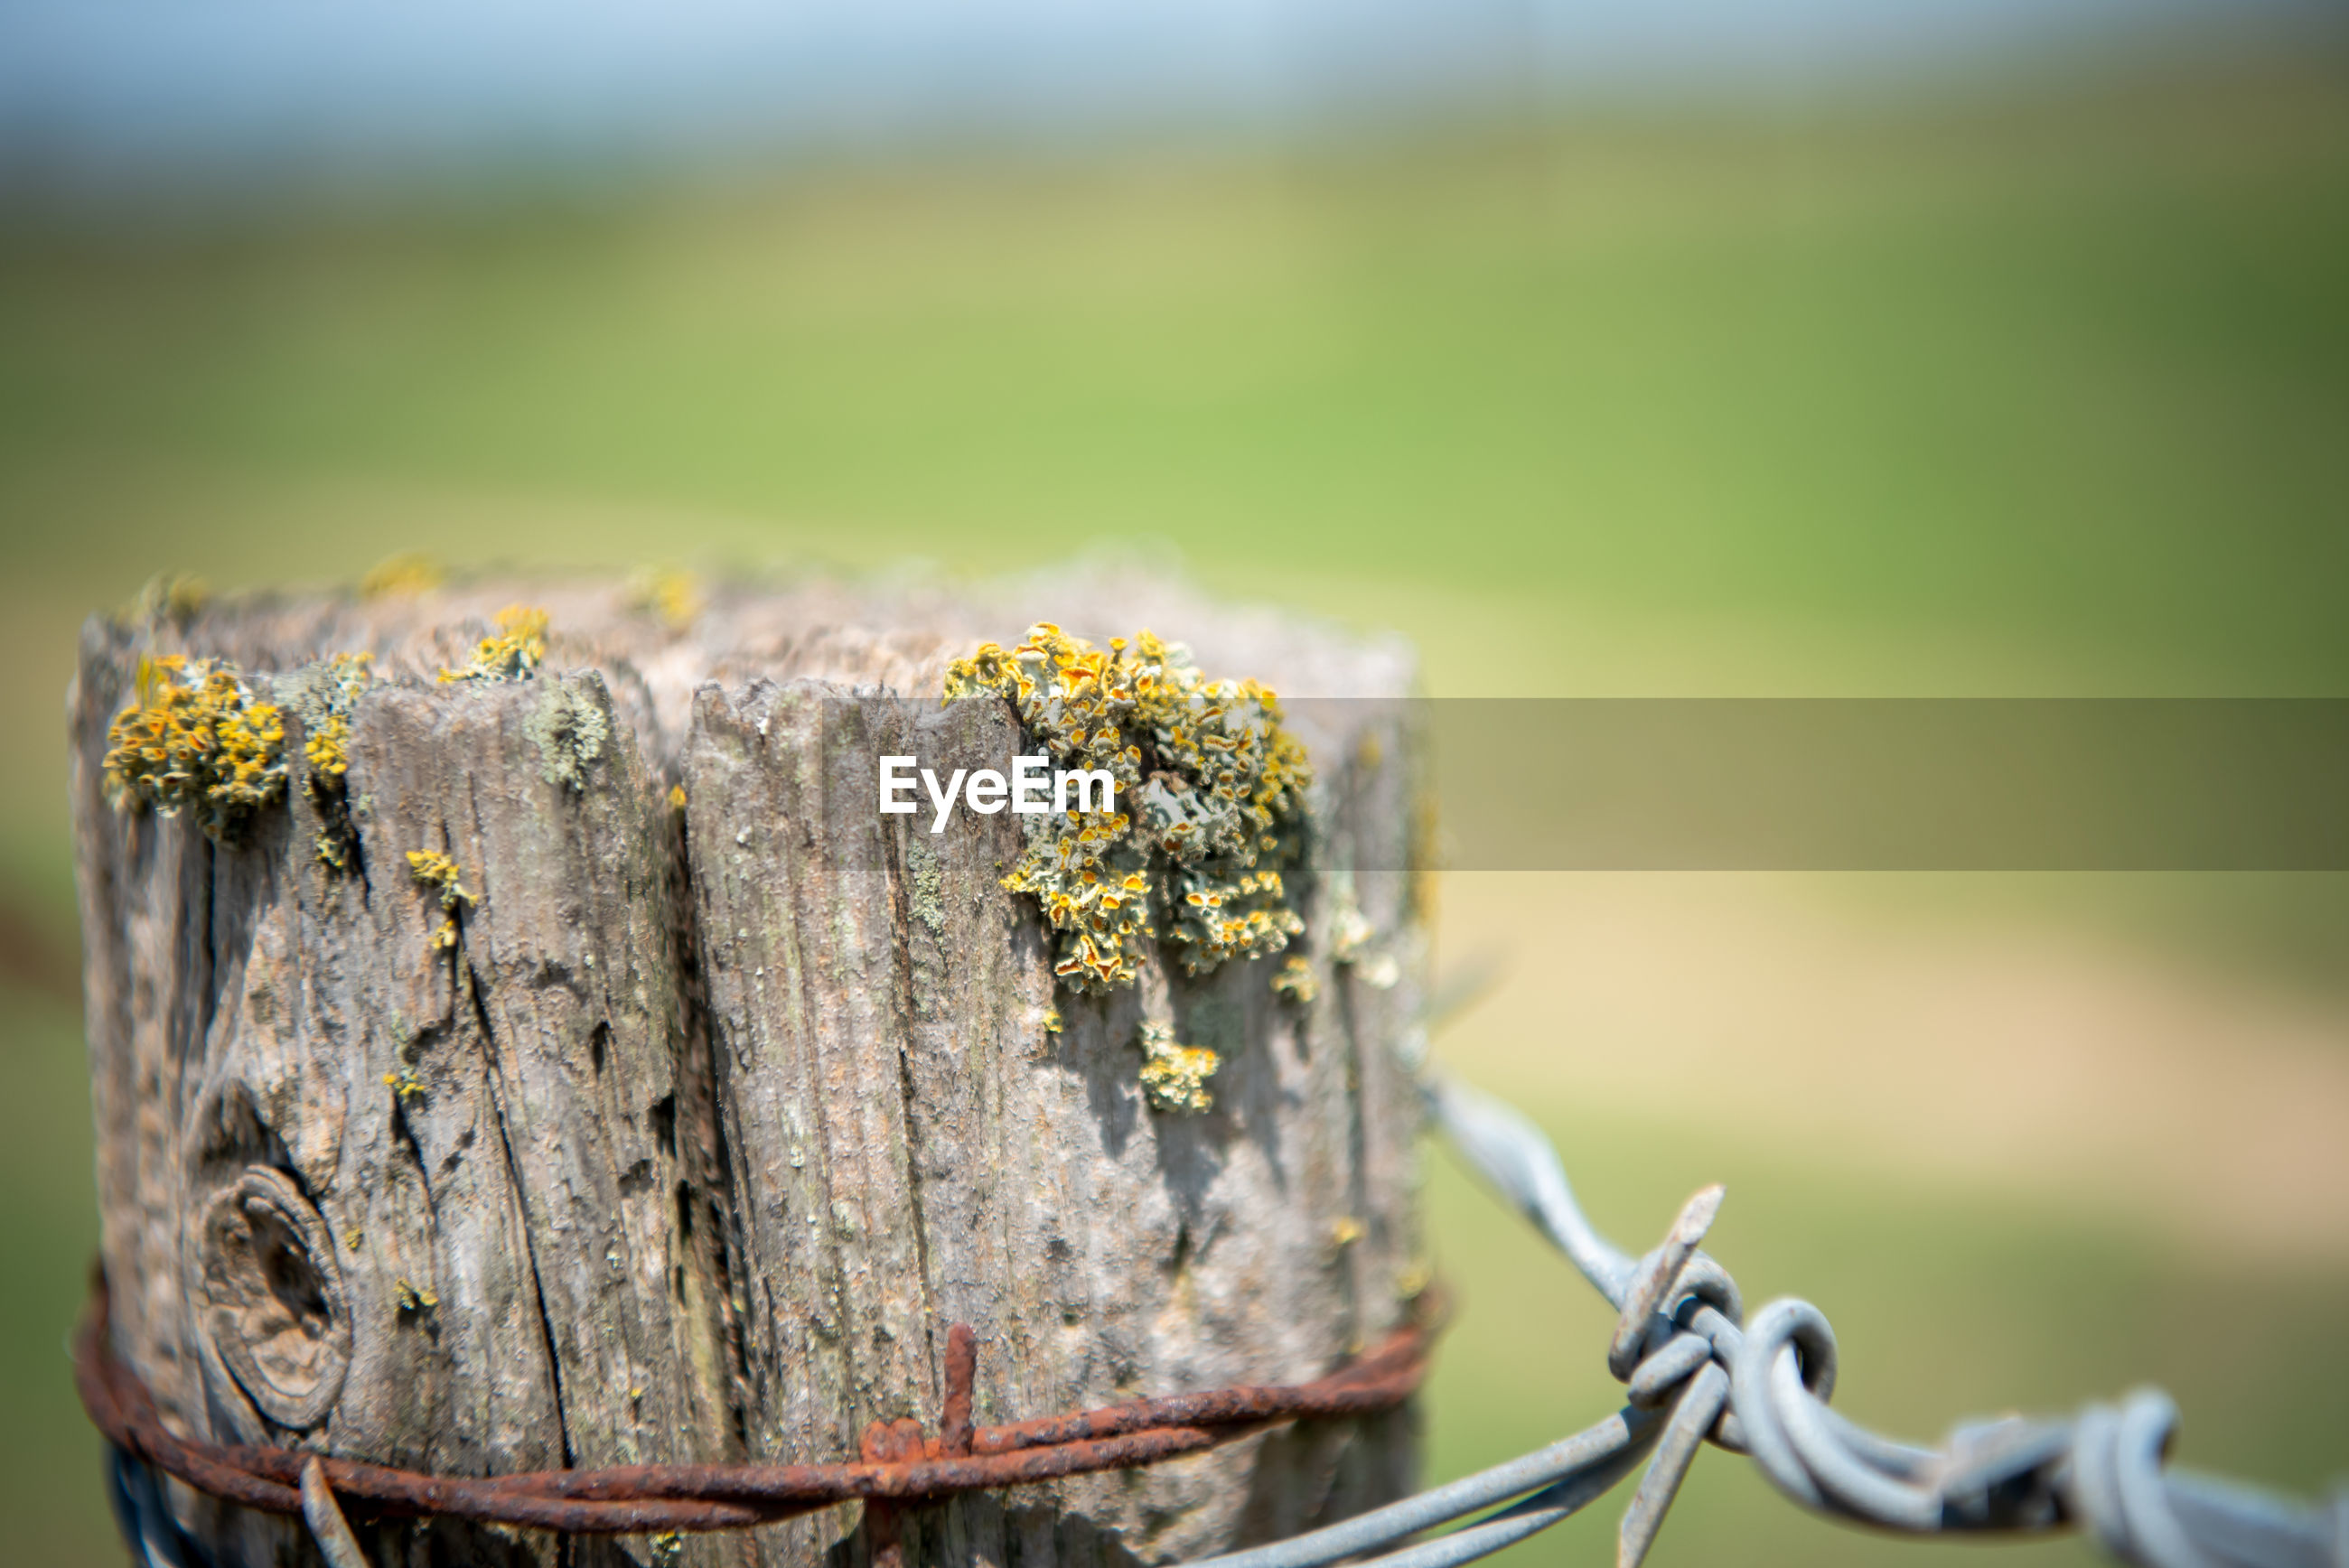 CLOSE-UP OF RUSTY METAL FENCE IN TREE STUMP